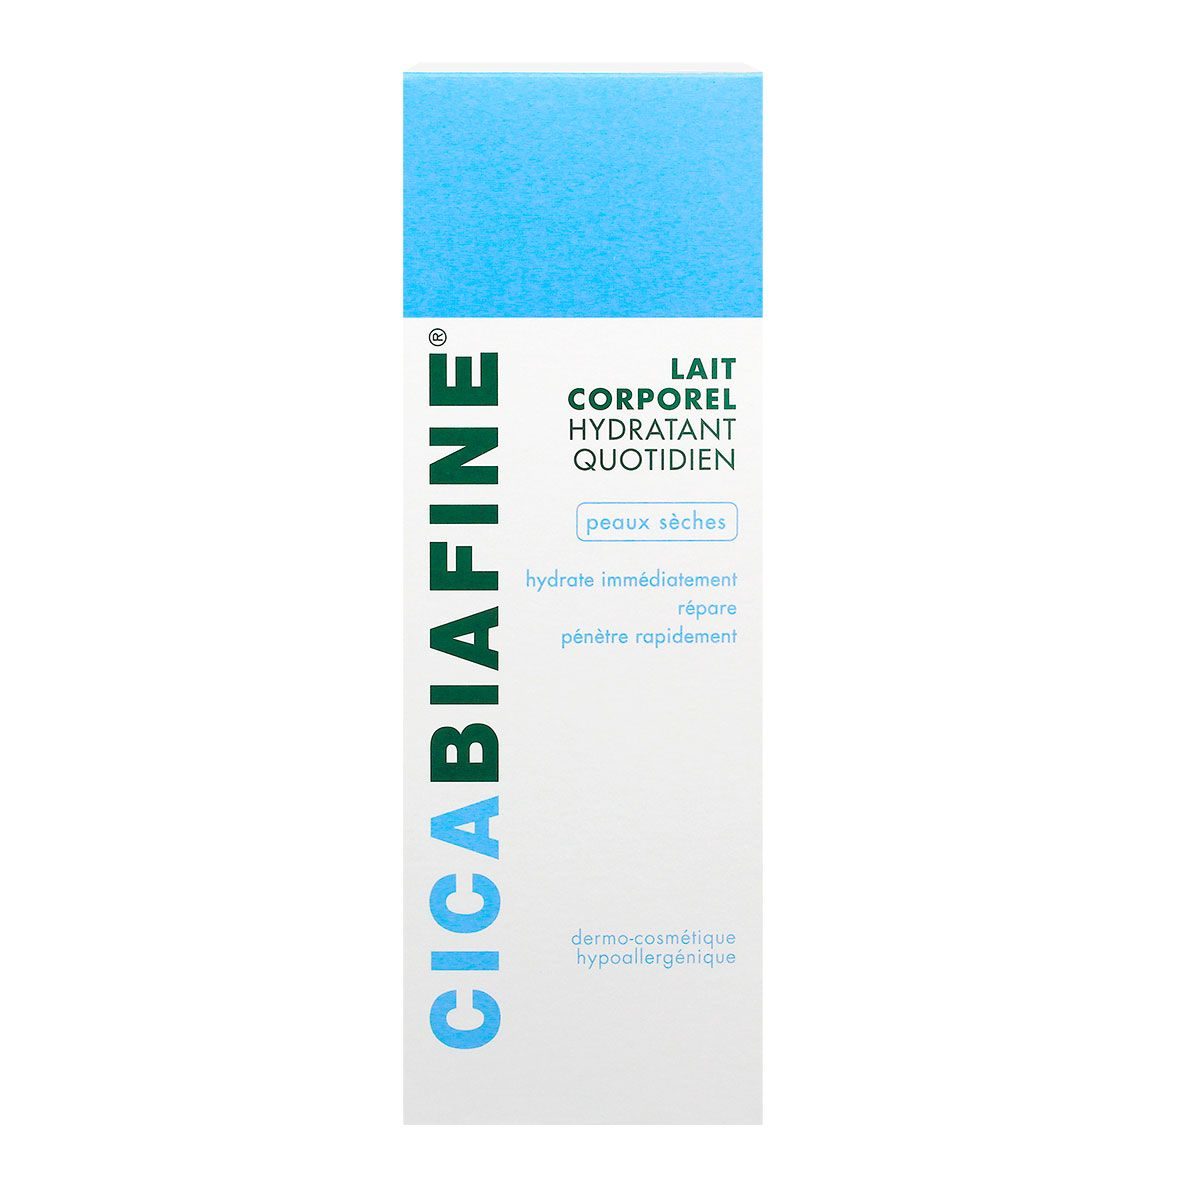 Lait corporel hydratant quotidien 200ml